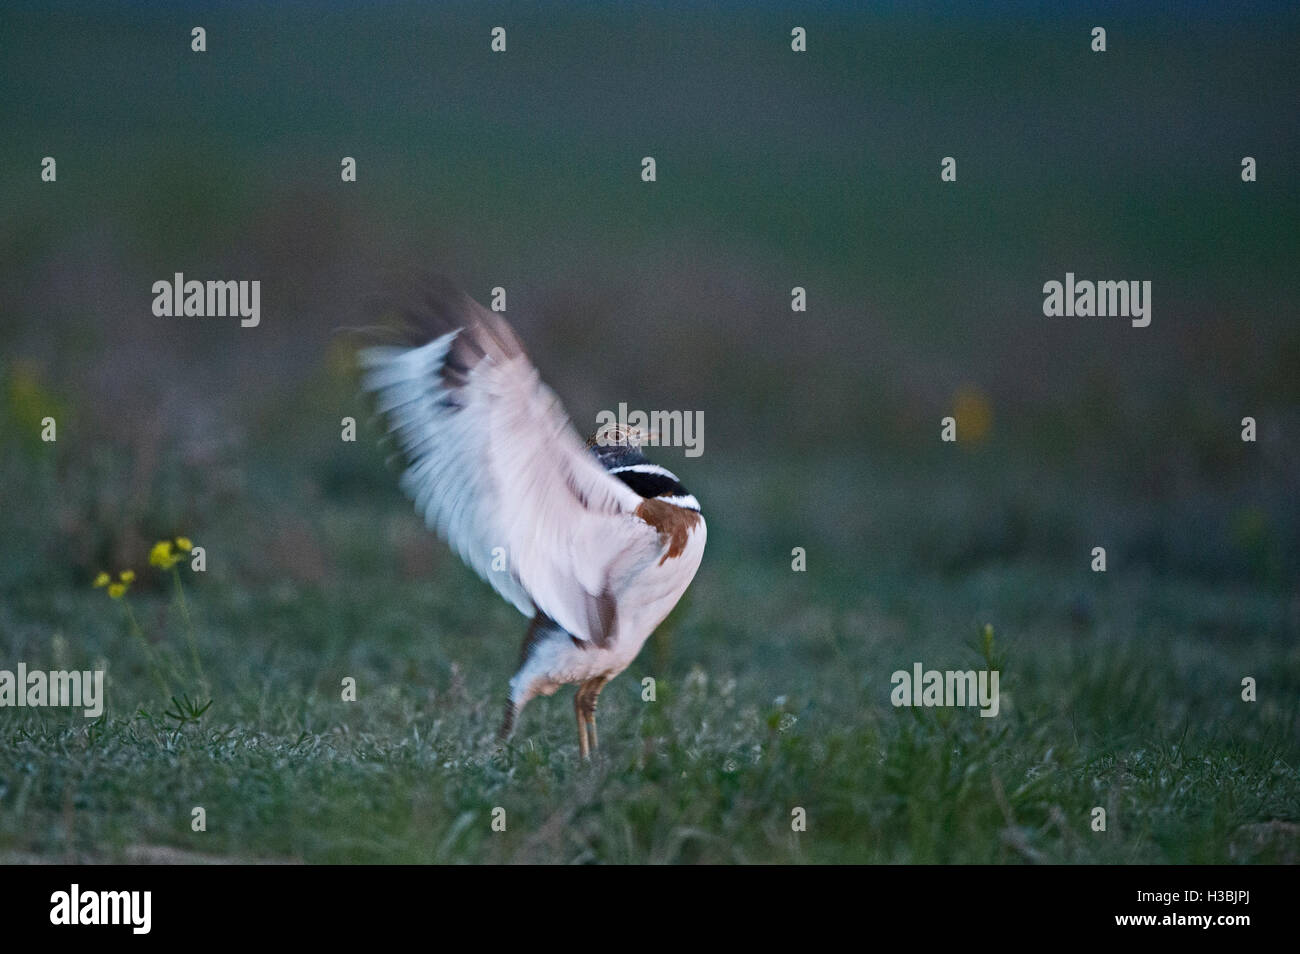 Little Bustard, Tetrax tetrax displaying at lek with wing flapping display conducted prior to dawn on Spanish steppes, - Stock Image